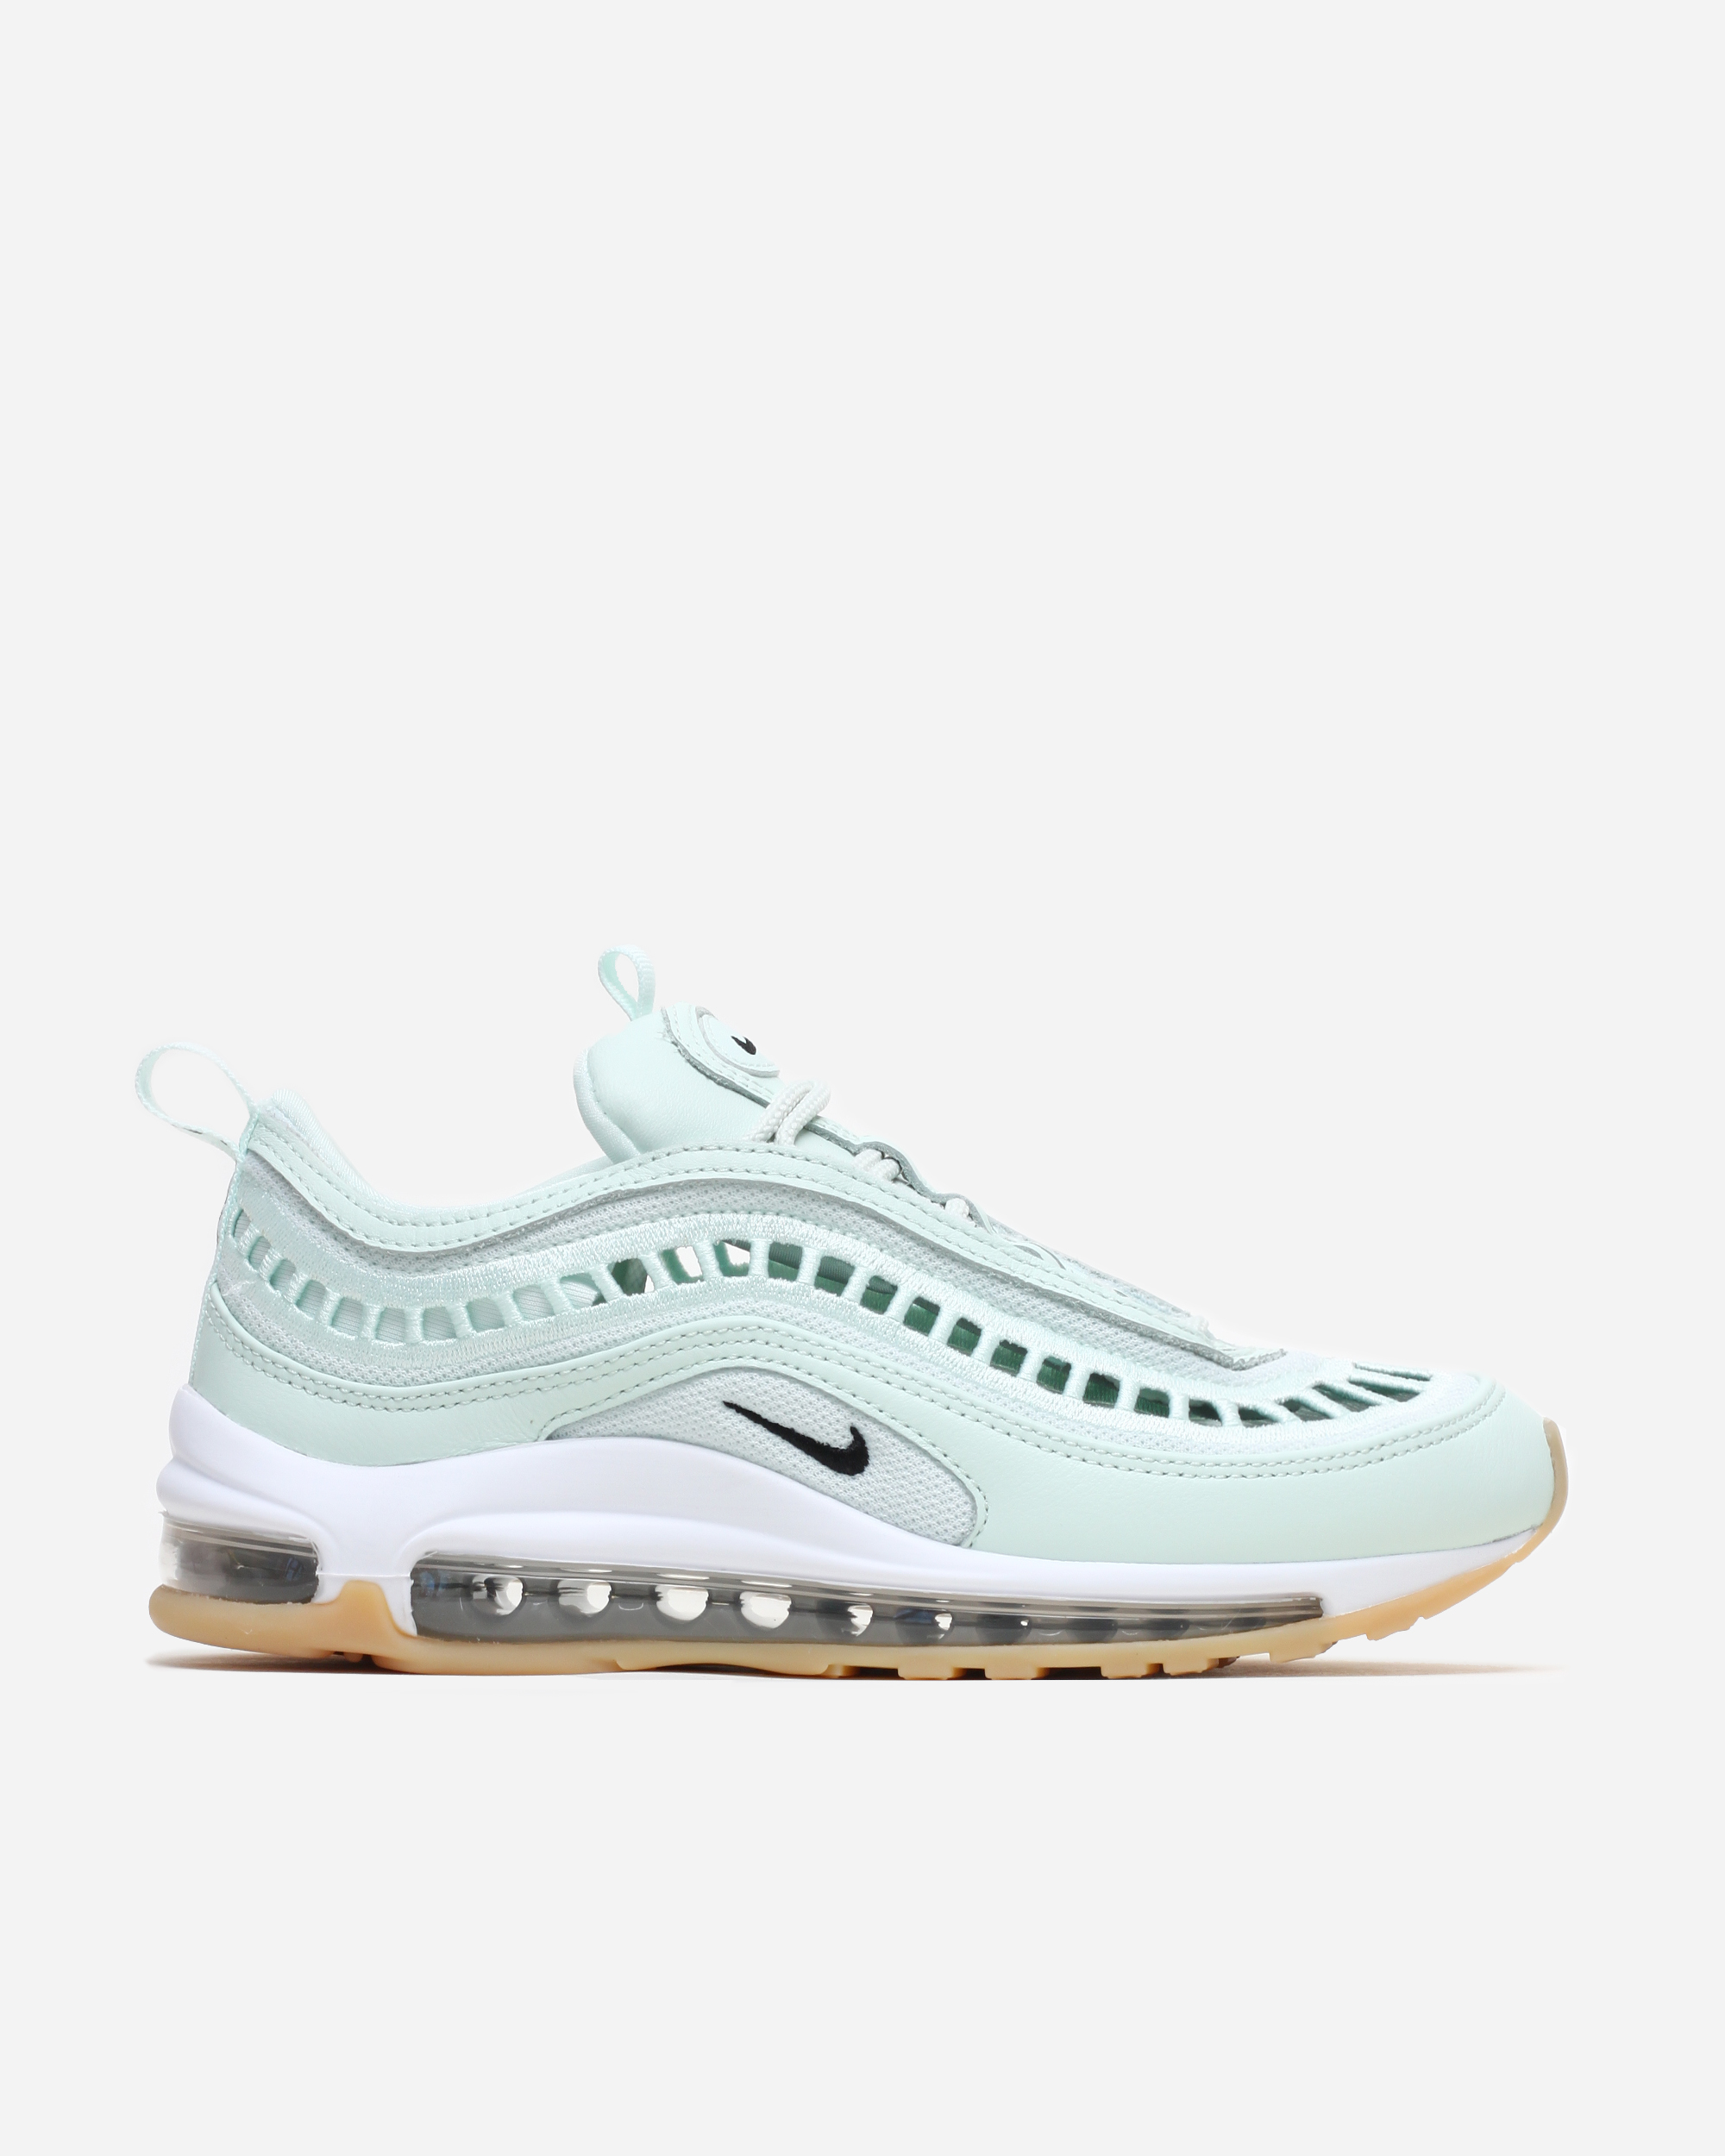 Nike Sportswear Air Max 97 Ultra '17 SI Barely GreenBlack